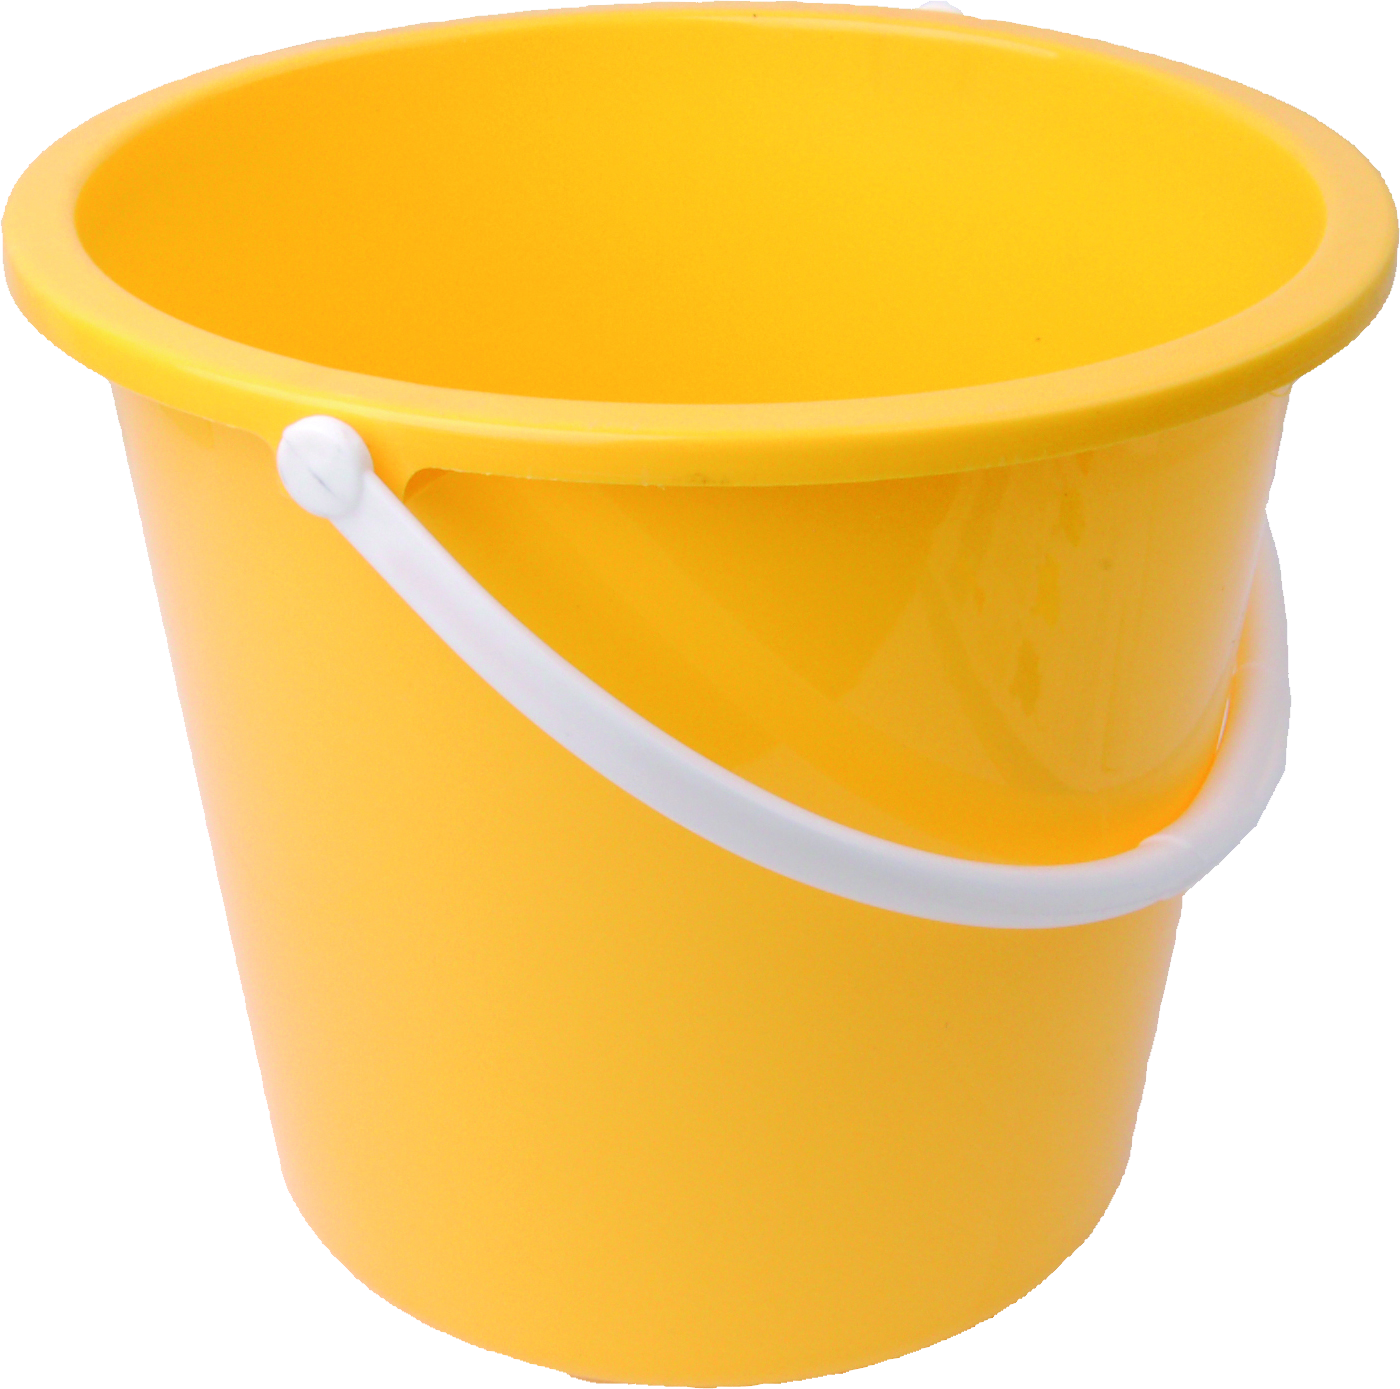 Plastic yellow bucket PNG image free download - Bucket HD PNG